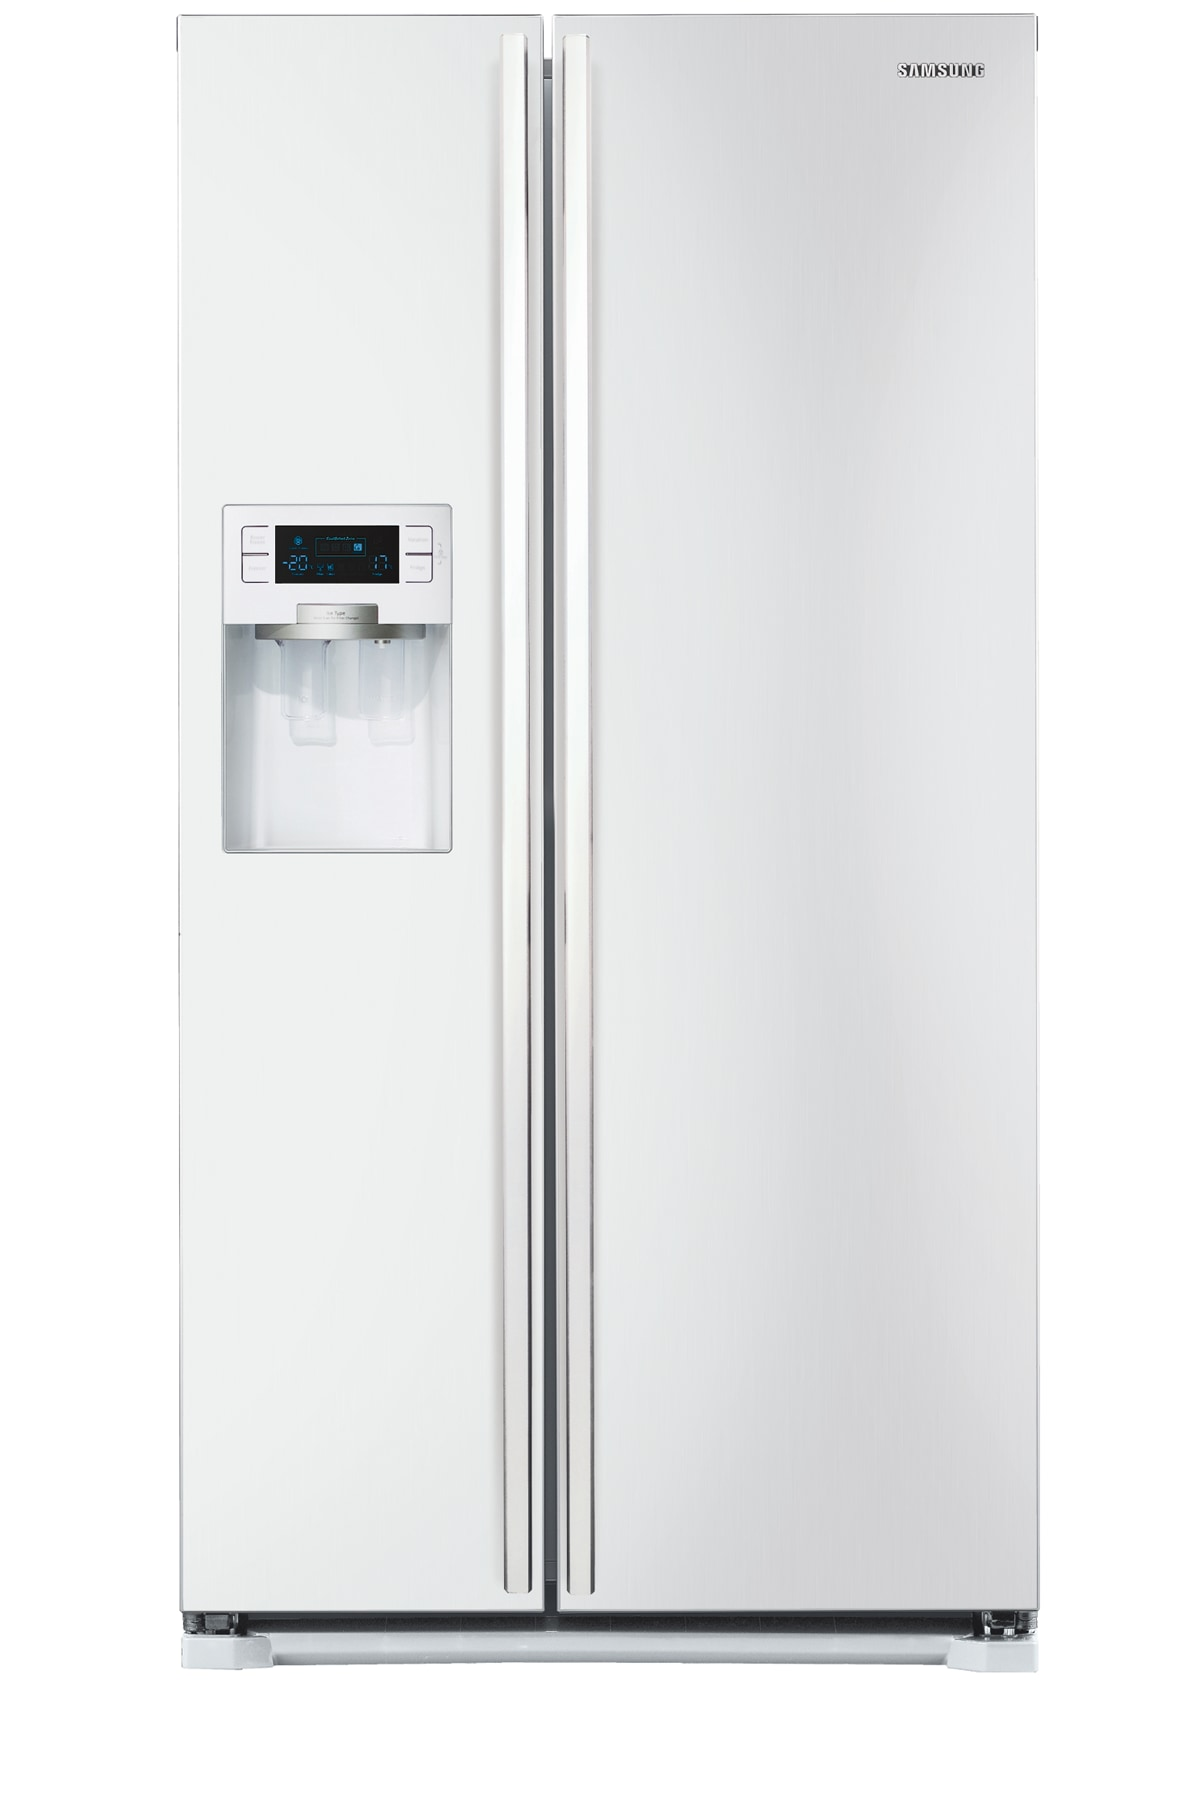 HM09 SBS with Water Dispenser, 547 L